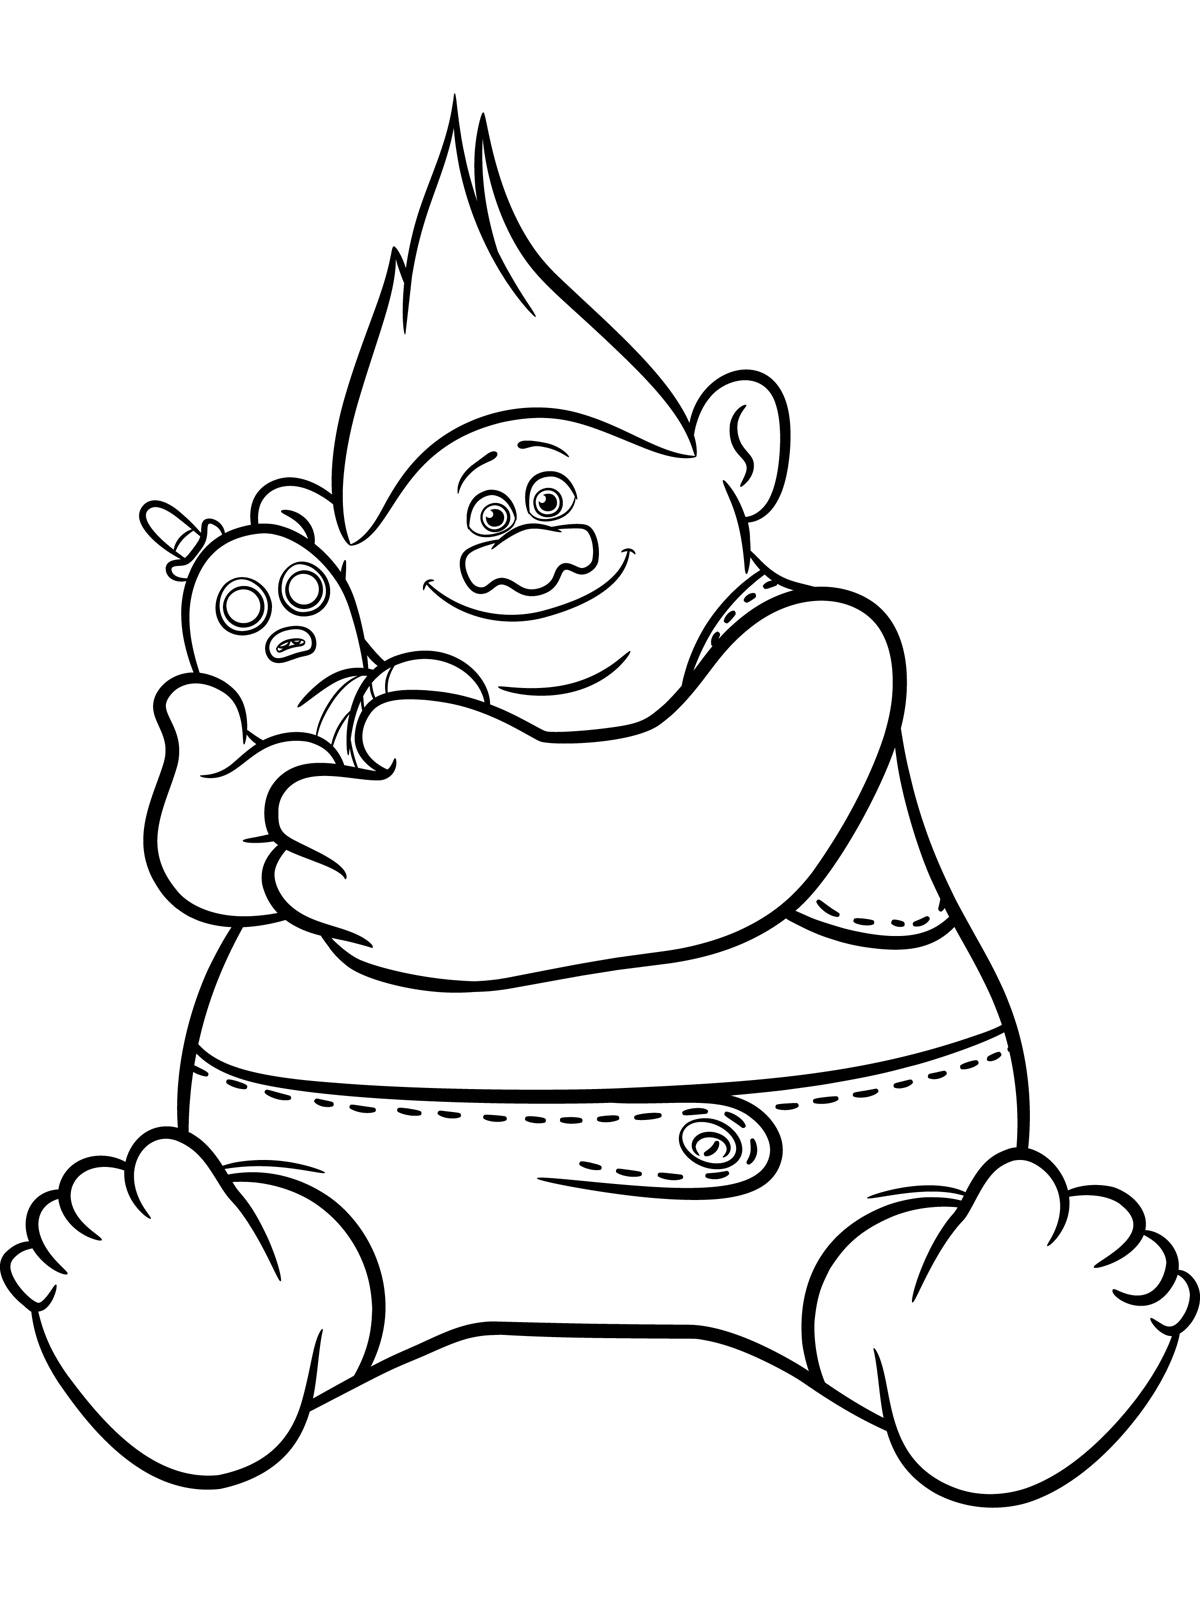 trolls coloring pages free trolls coloring pages at getdrawings free download trolls coloring pages